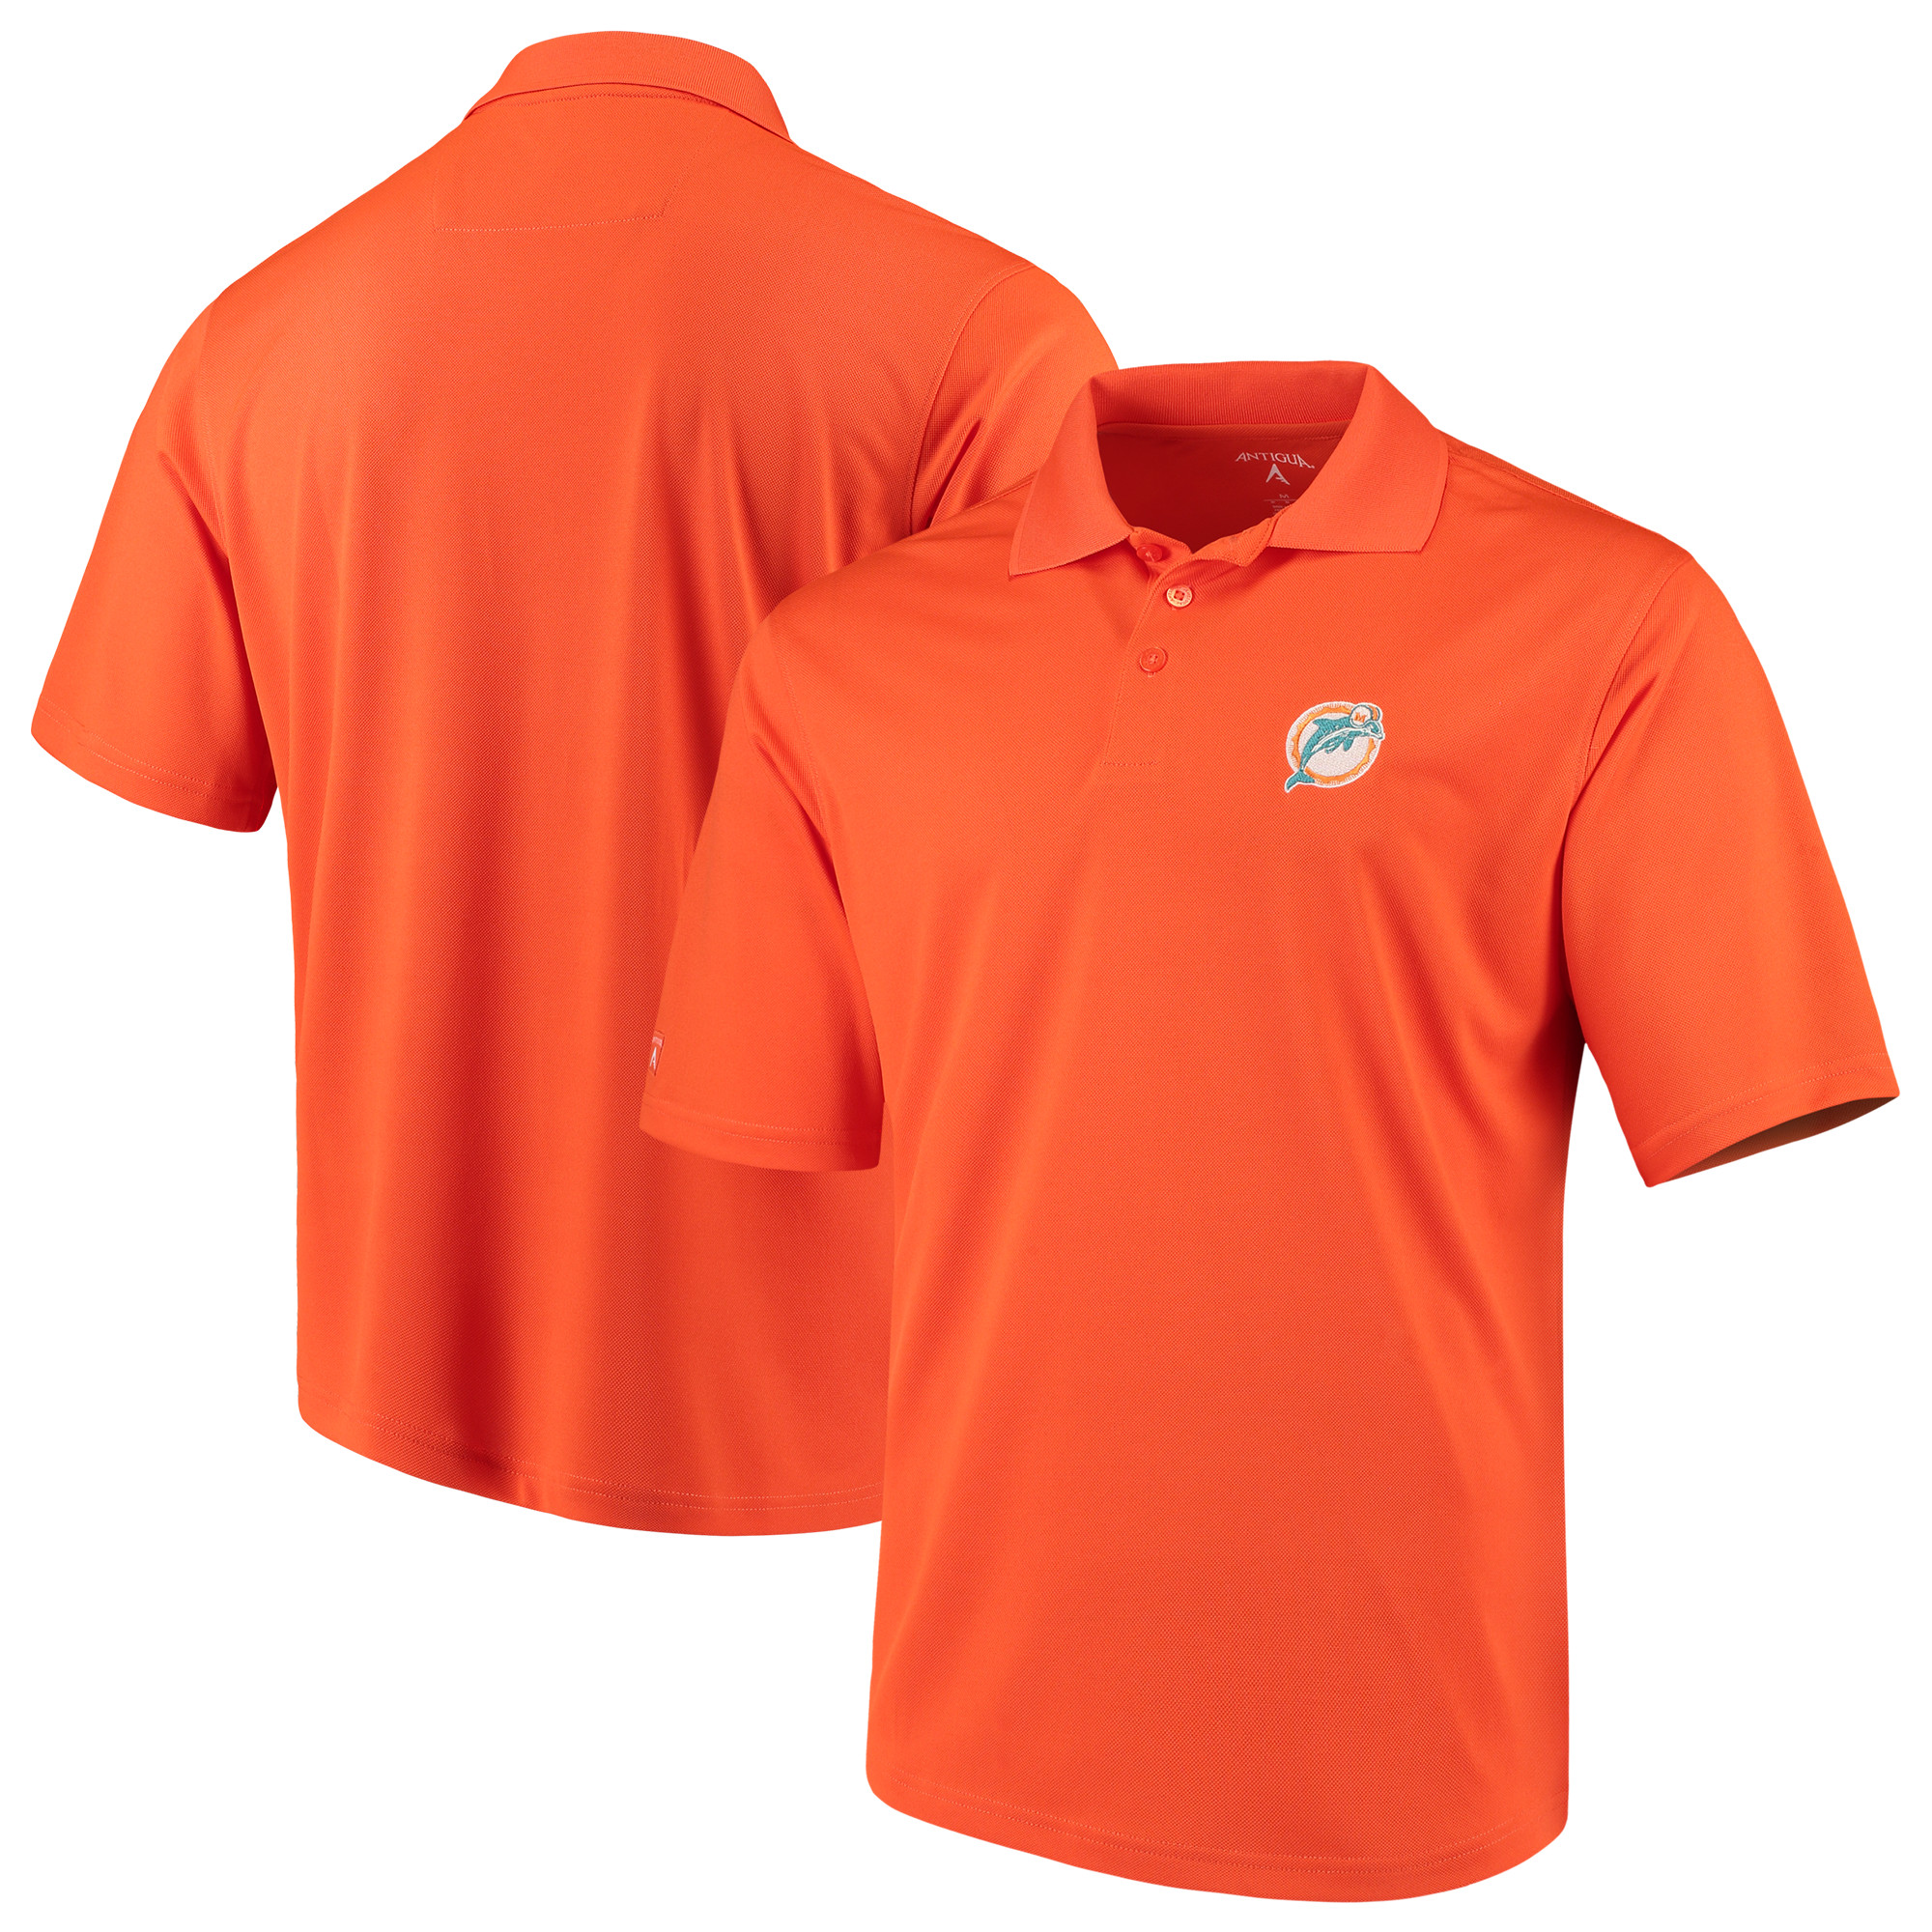 Miami Dolphins Antigua Throwback Pique Polo - Orange